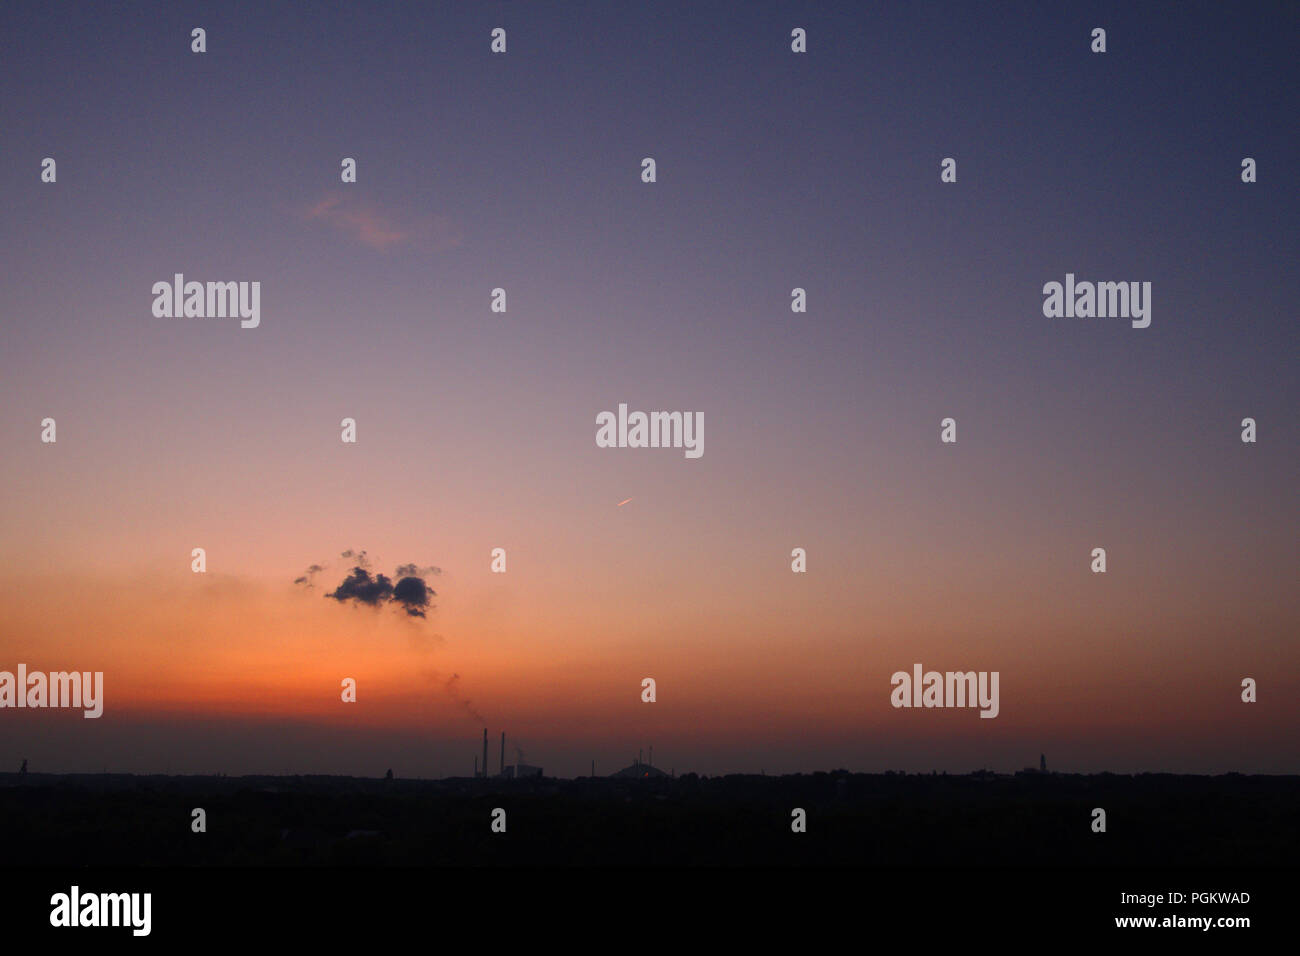 Puffy clouds from chimney stacks against a sunset. - Stock Image